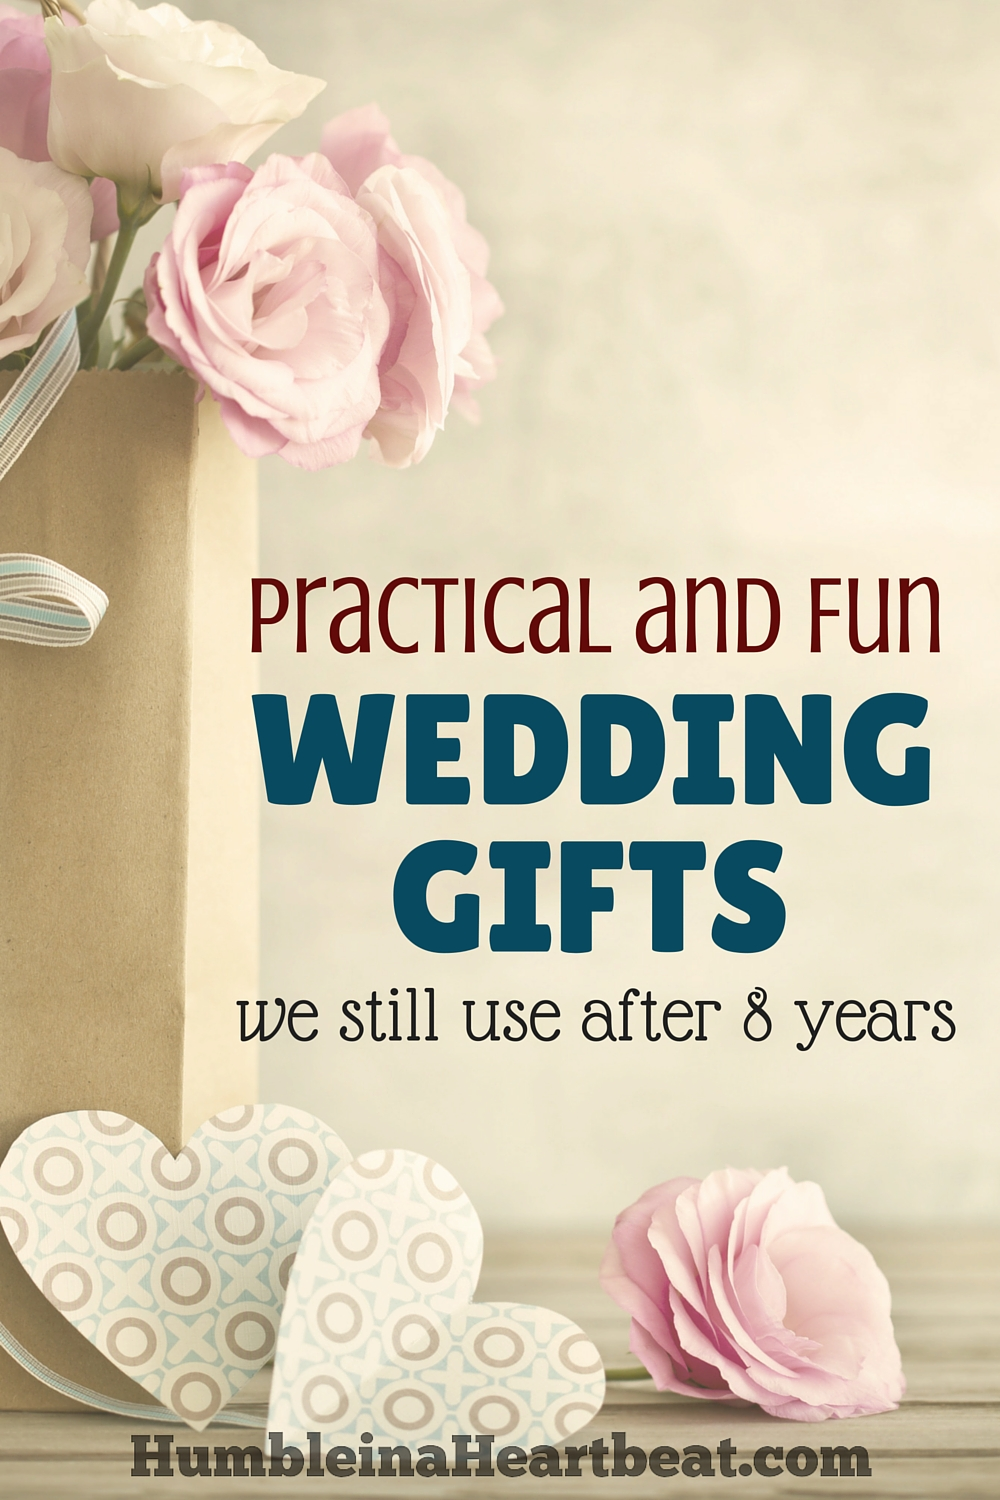 50 Best Wedding Gift Ideas For Marriage Anniversary Quotesbae